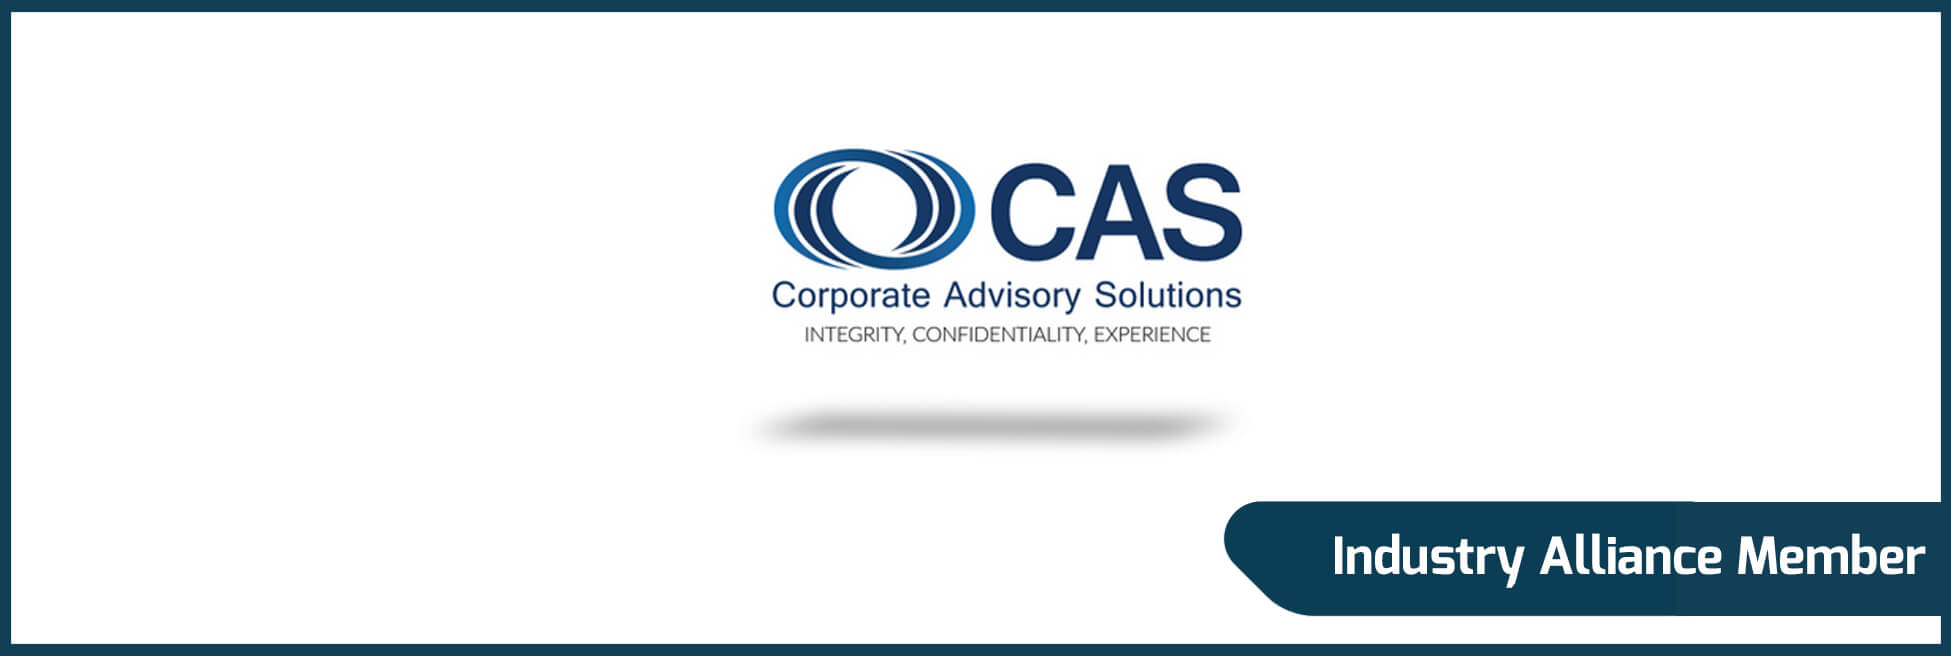 Corporate Advisory Solutions